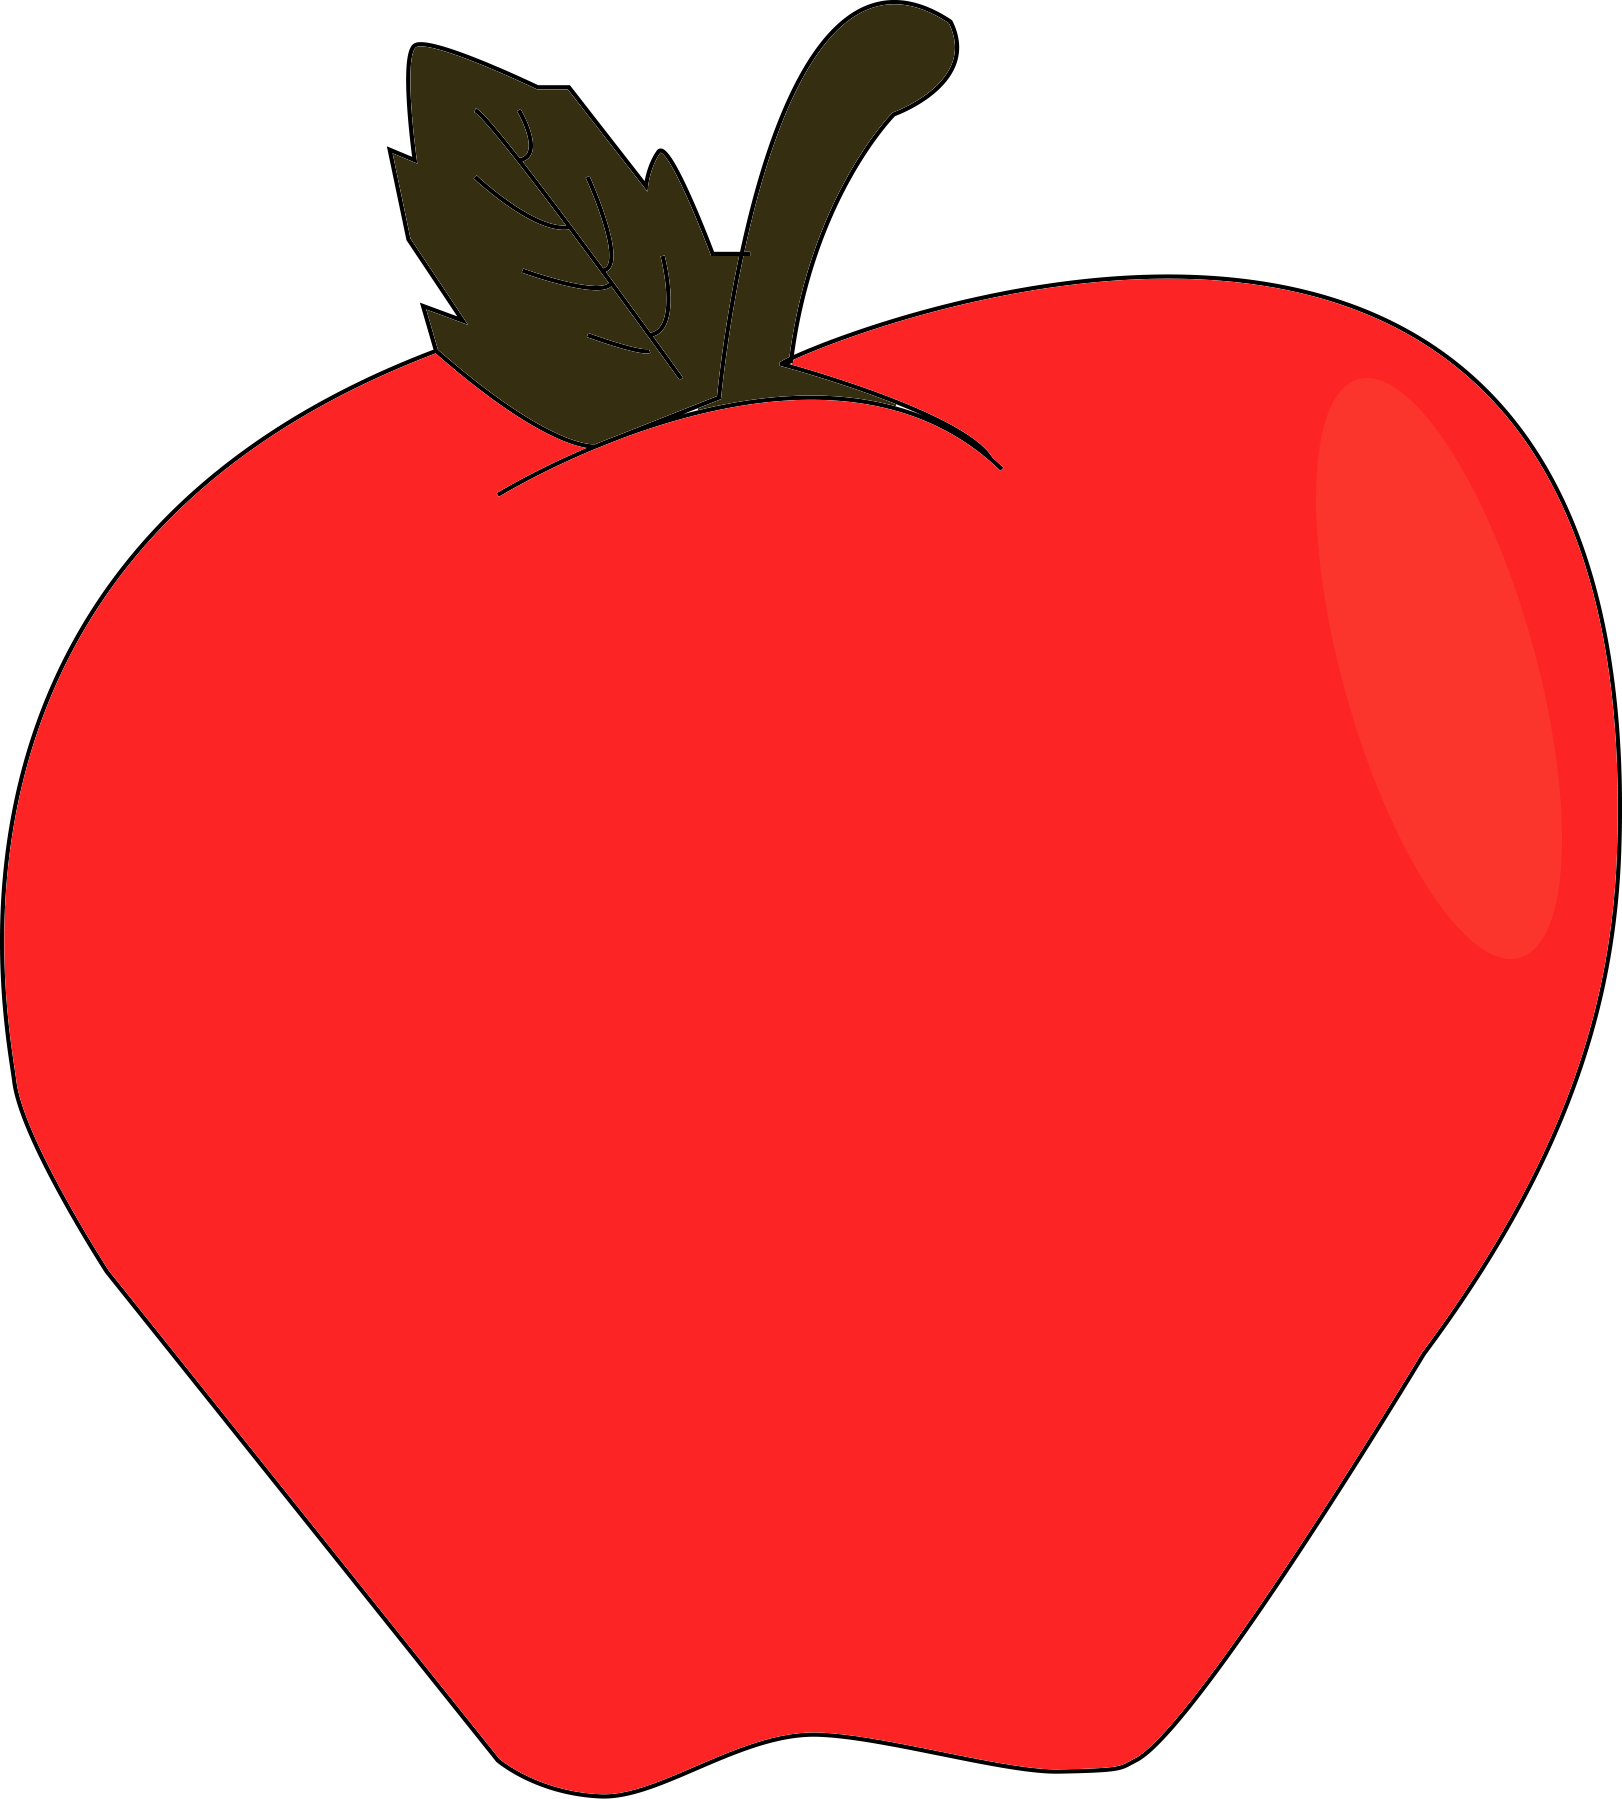 Clipart of apple dump cake svg royalty free download Drawing Apple by illustrator cc - Album on Imgur svg royalty free download